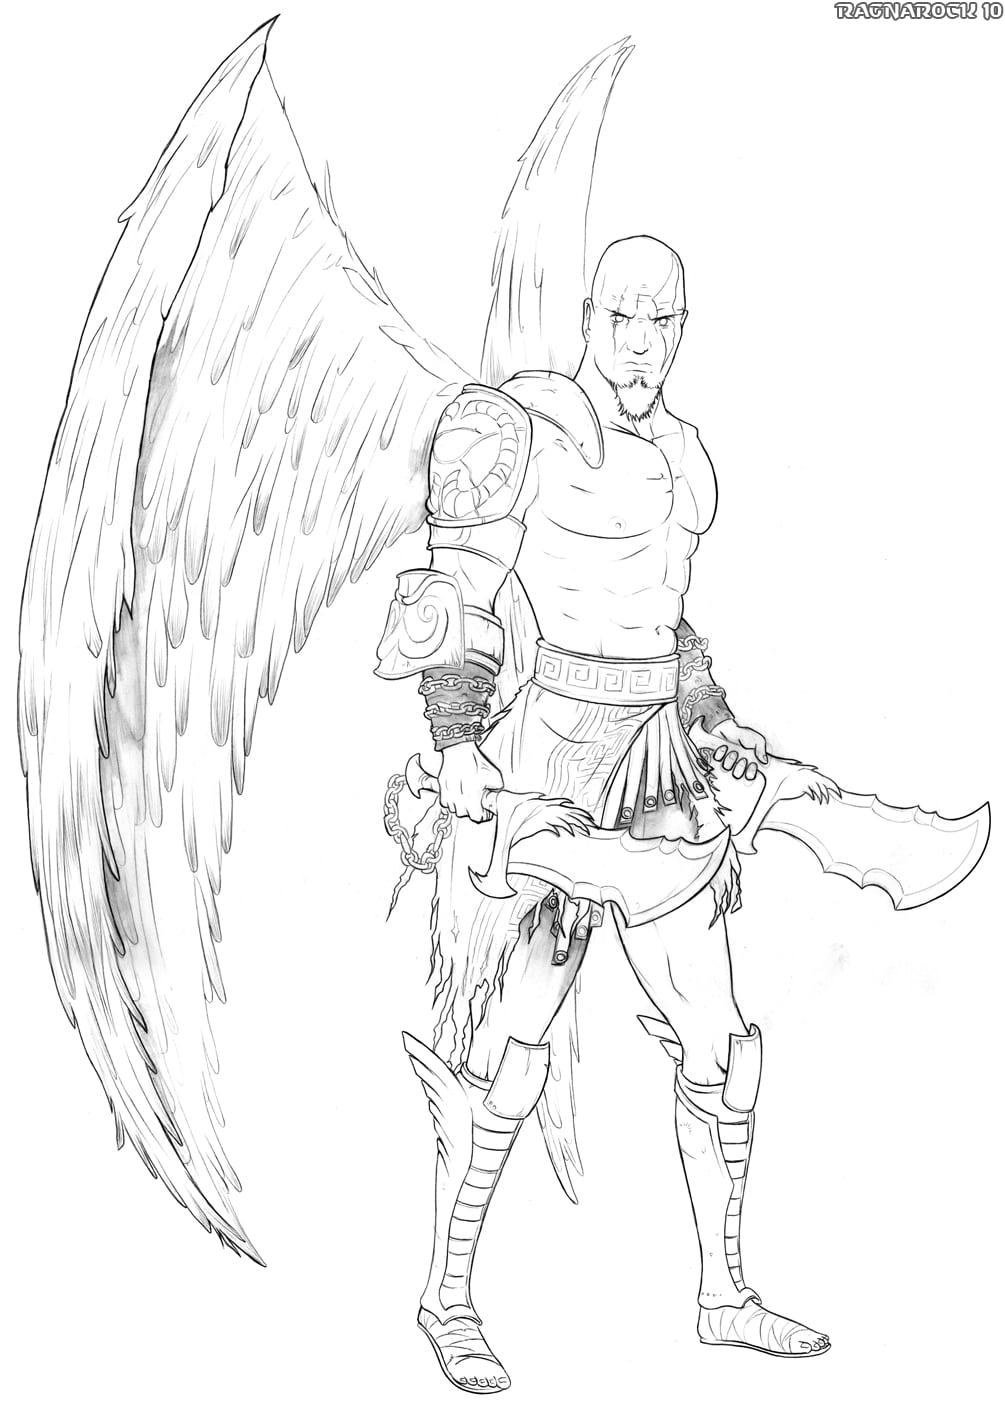 How To Draw God Of War, Draw Kratos, Step By Step, Video Game